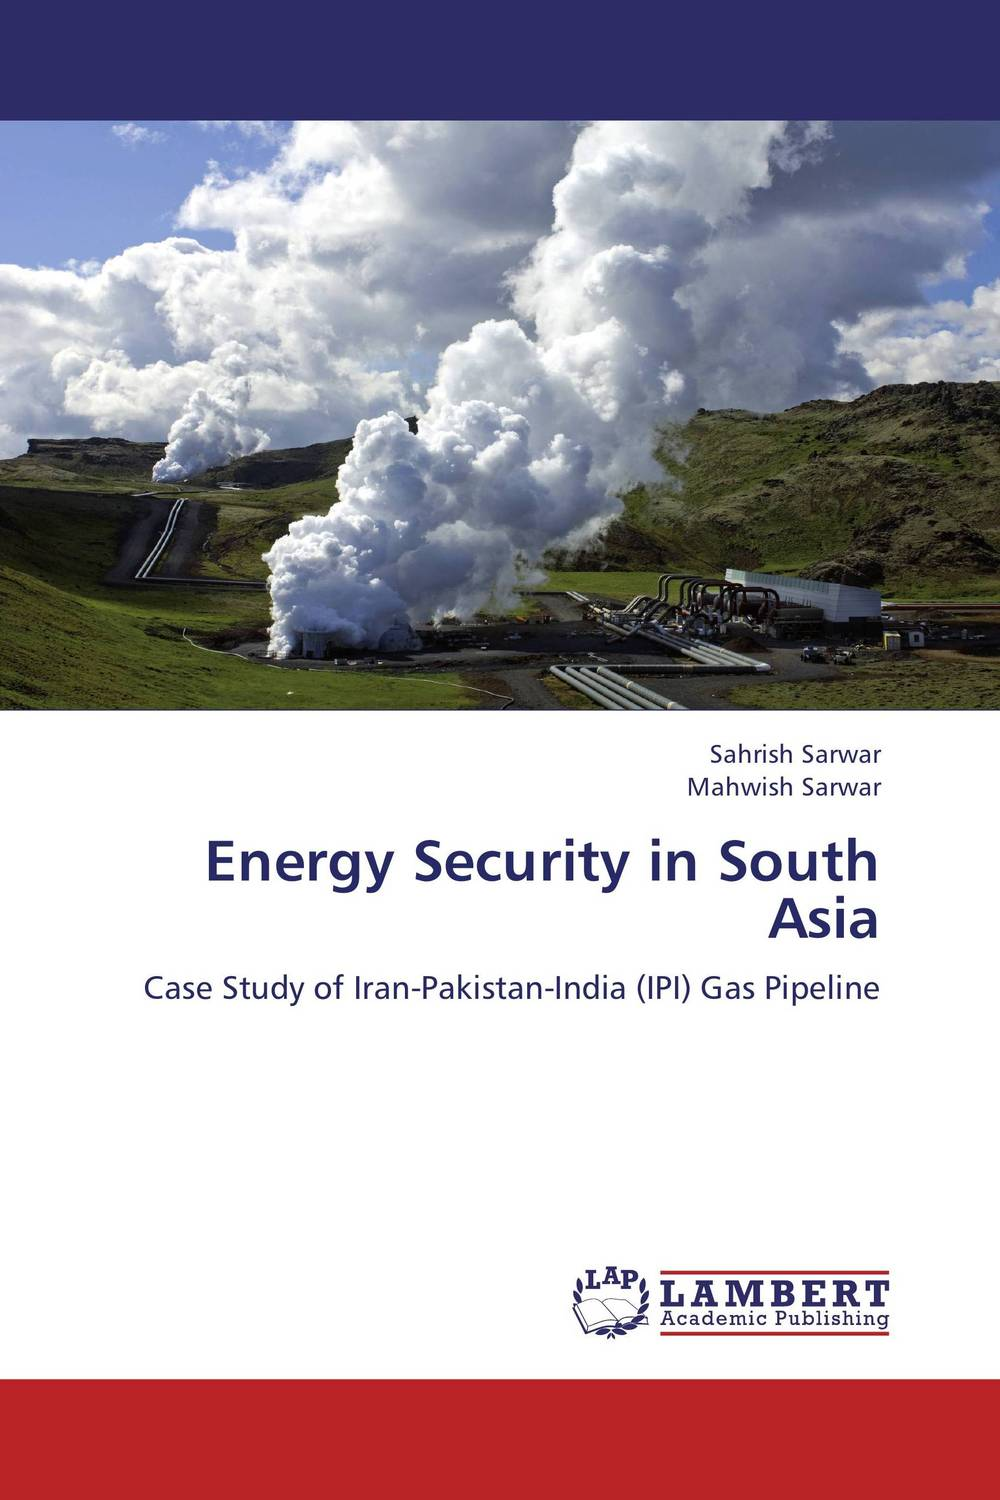 Energy Security in South Asia belousov a security features of banknotes and other documents methods of authentication manual денежные билеты бланки ценных бумаг и документов